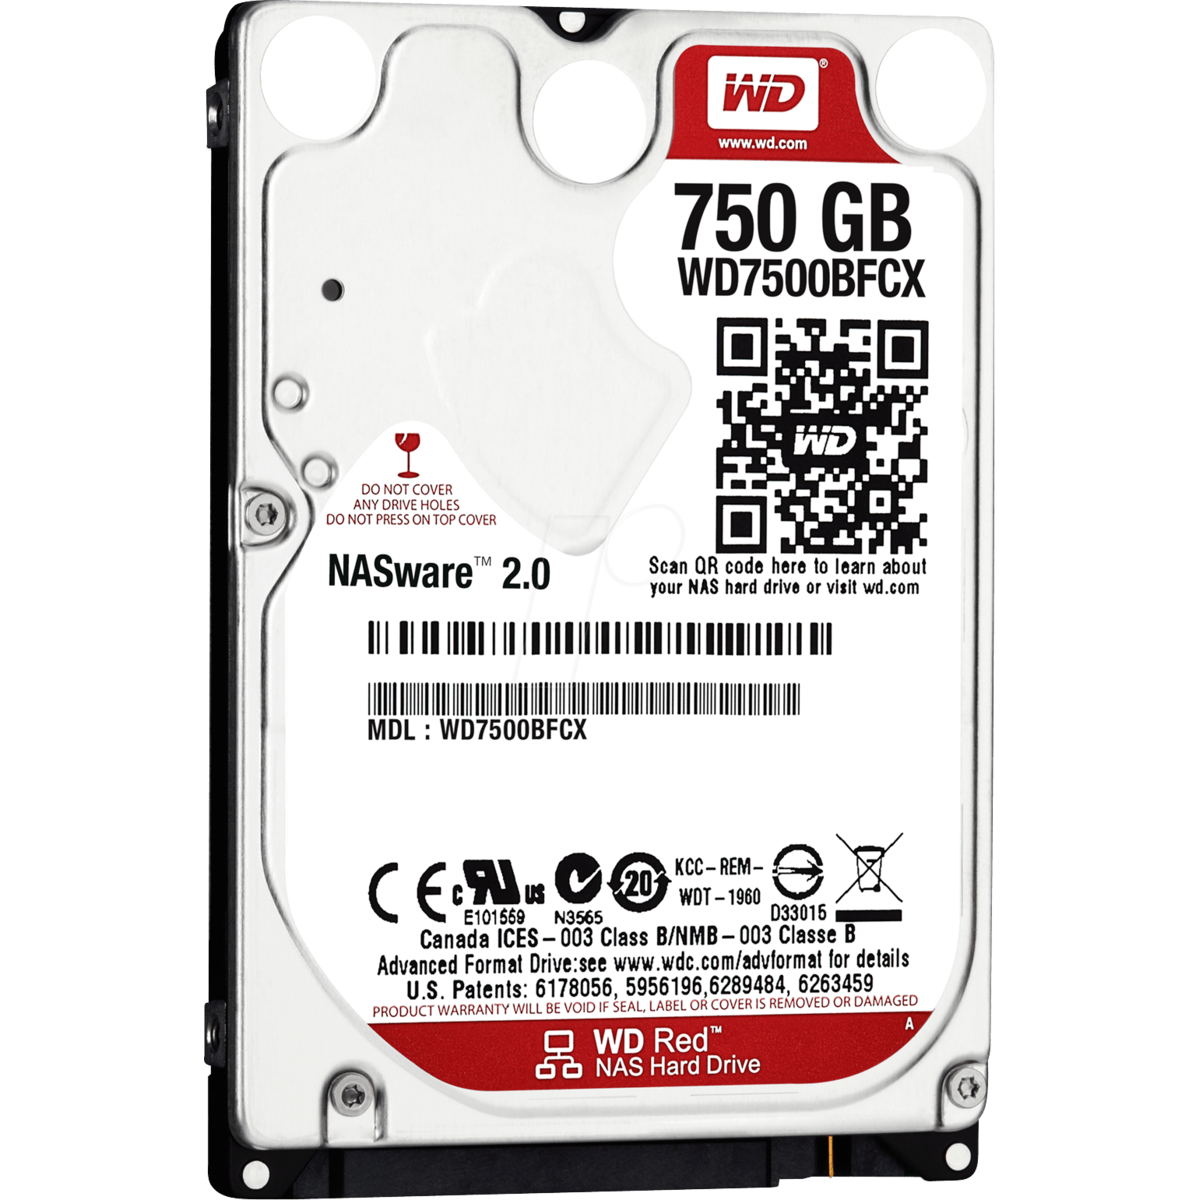 HDD Laptop WD7500BFCX Red, 750GB 2.5 inch, SATA 3 thumbnail